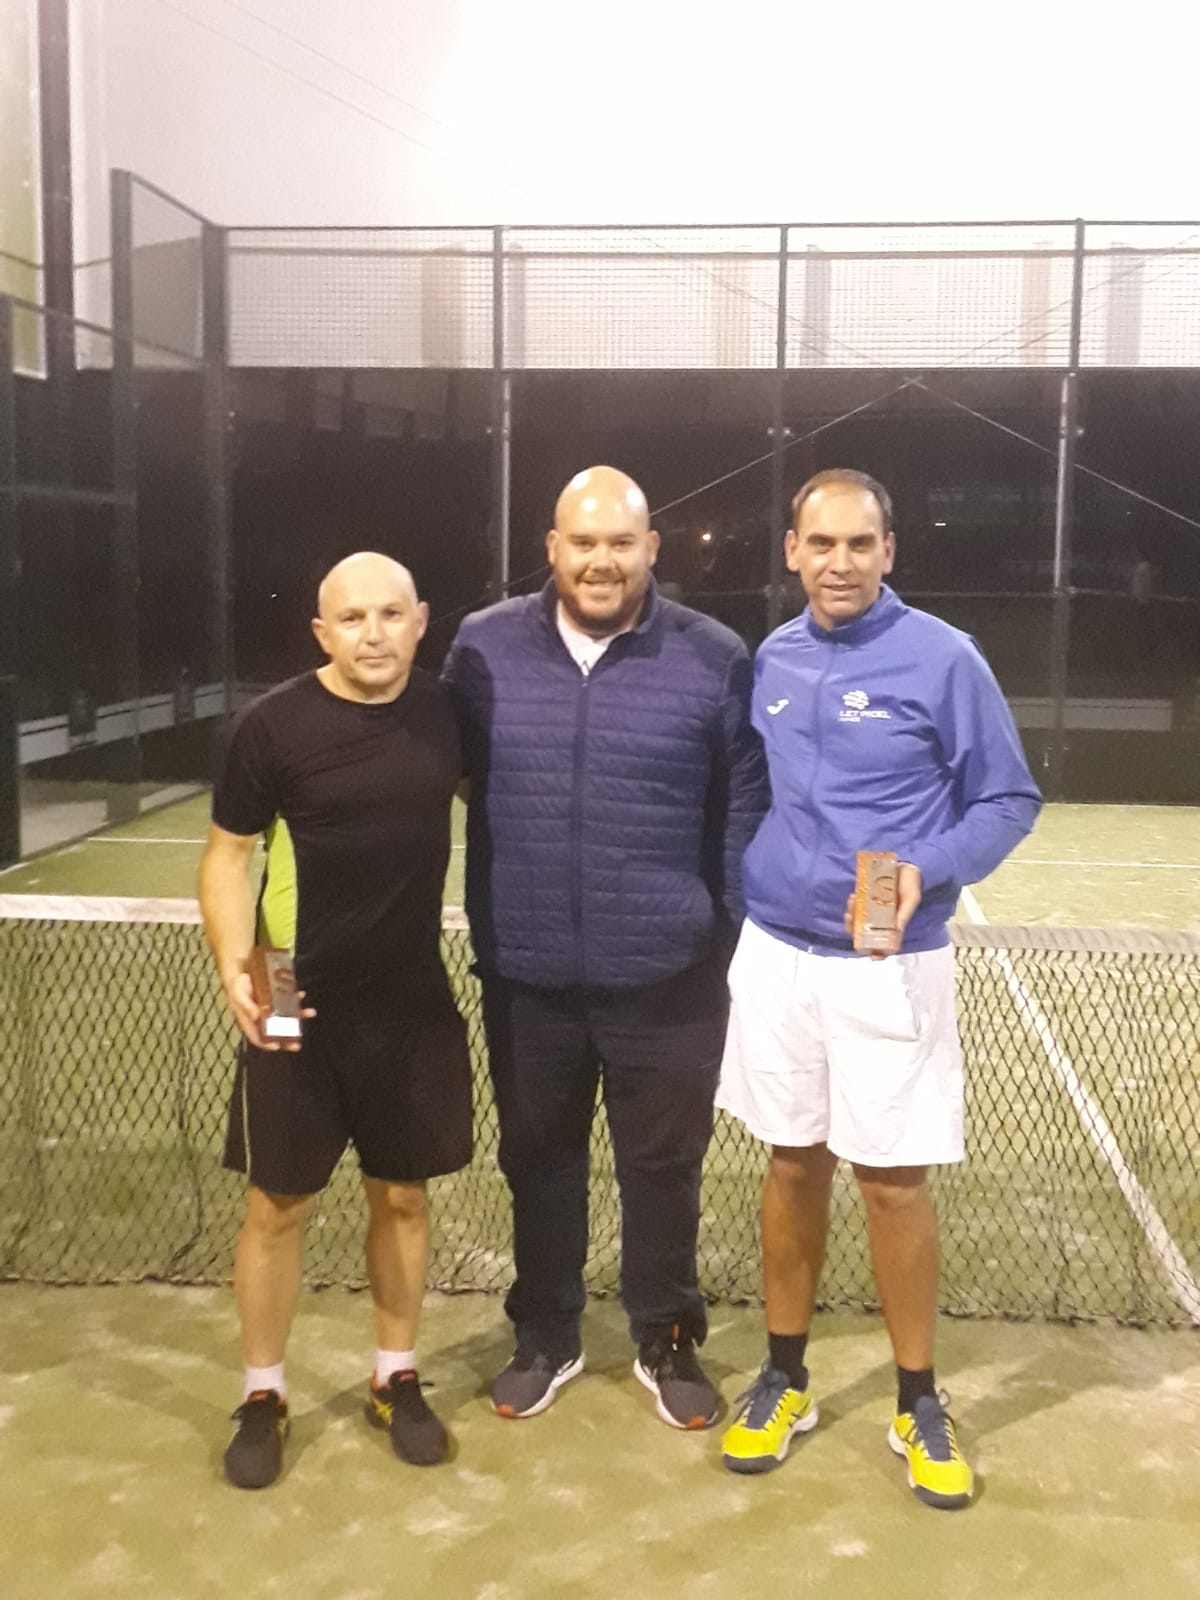 oriol-yunyent-e-jose-esparis-ganadores-do-i-torneo-de-padel